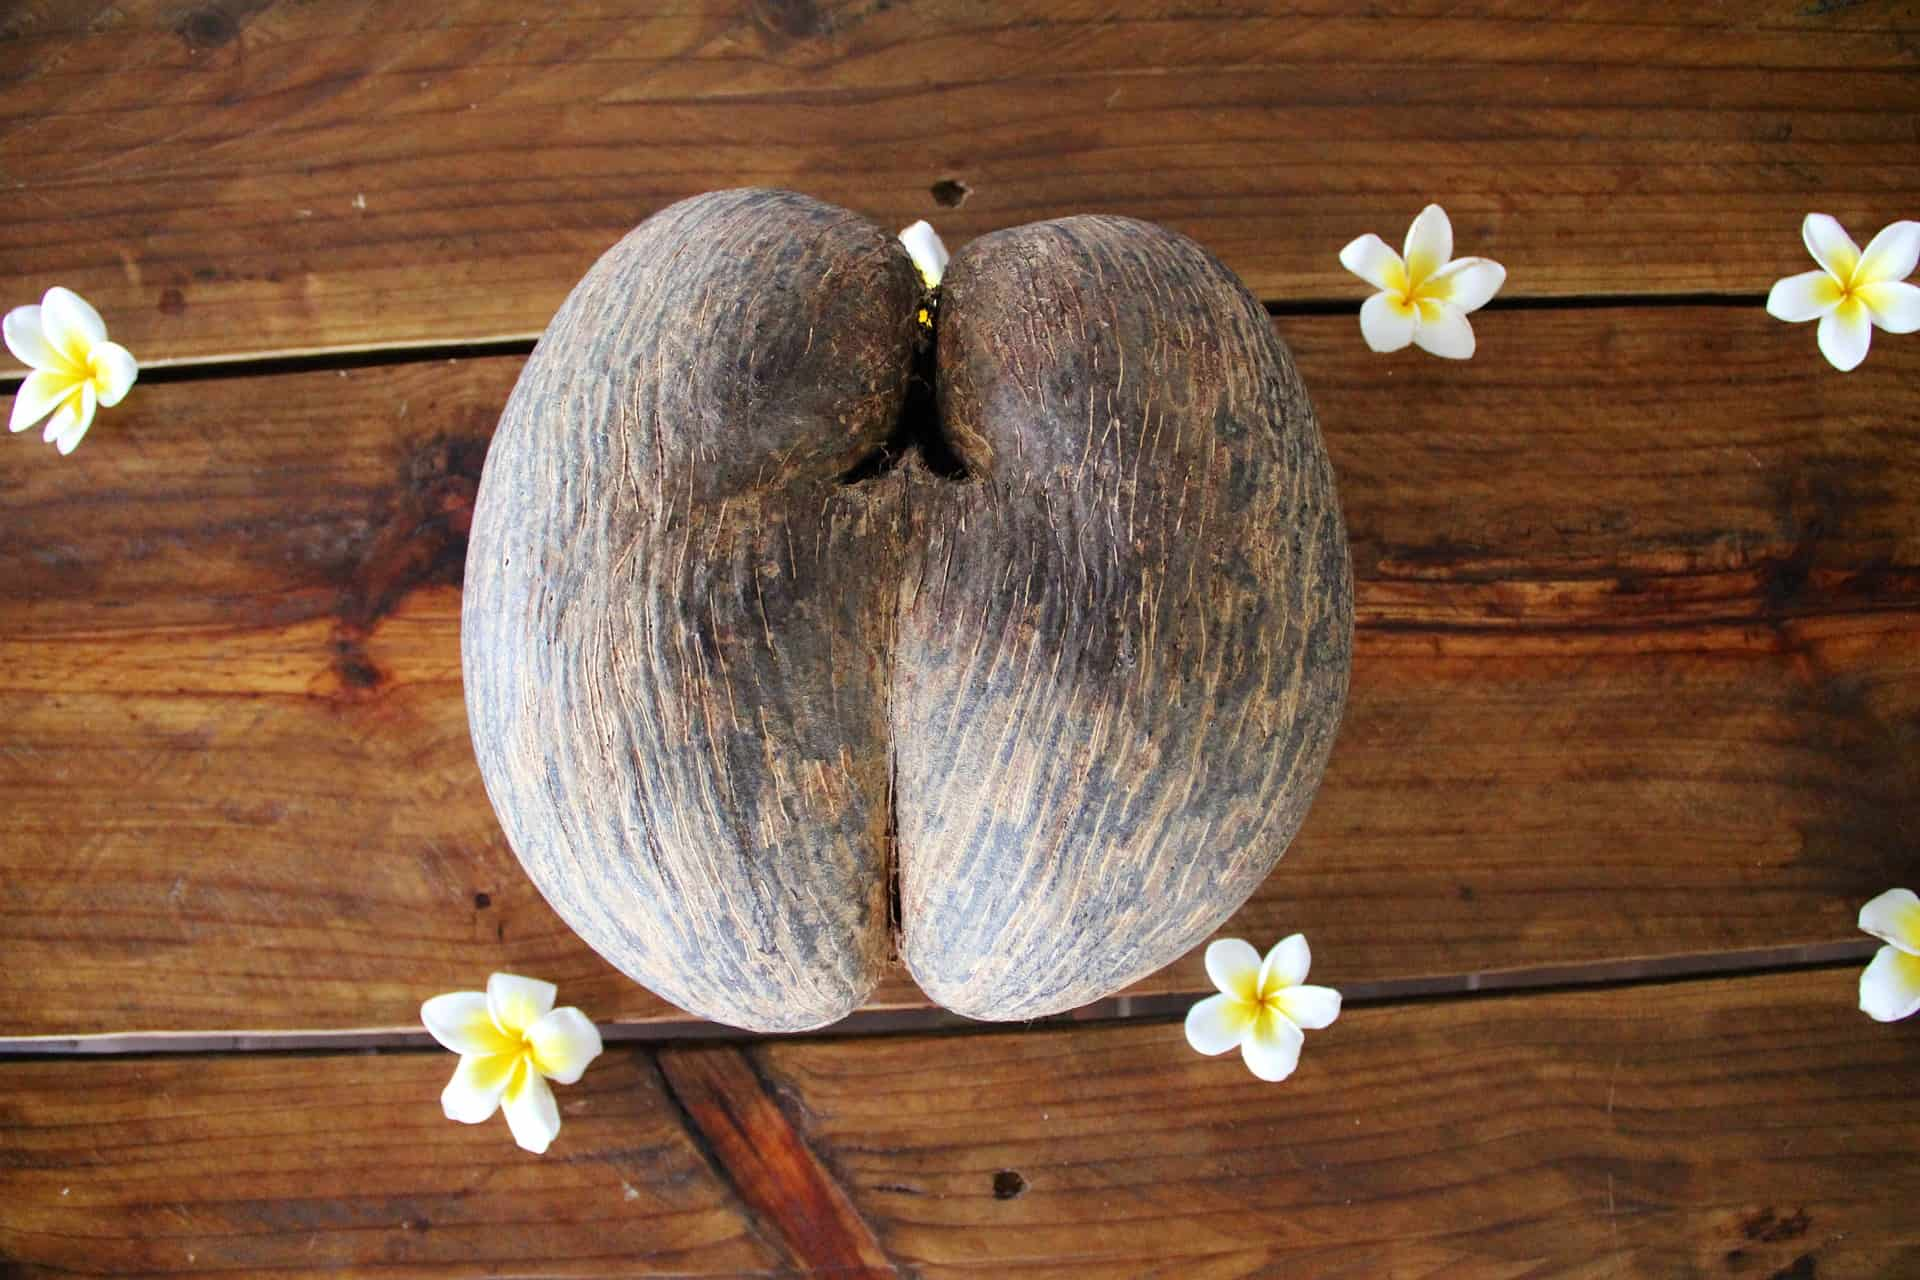 coco de mer, largest seed, plant facts